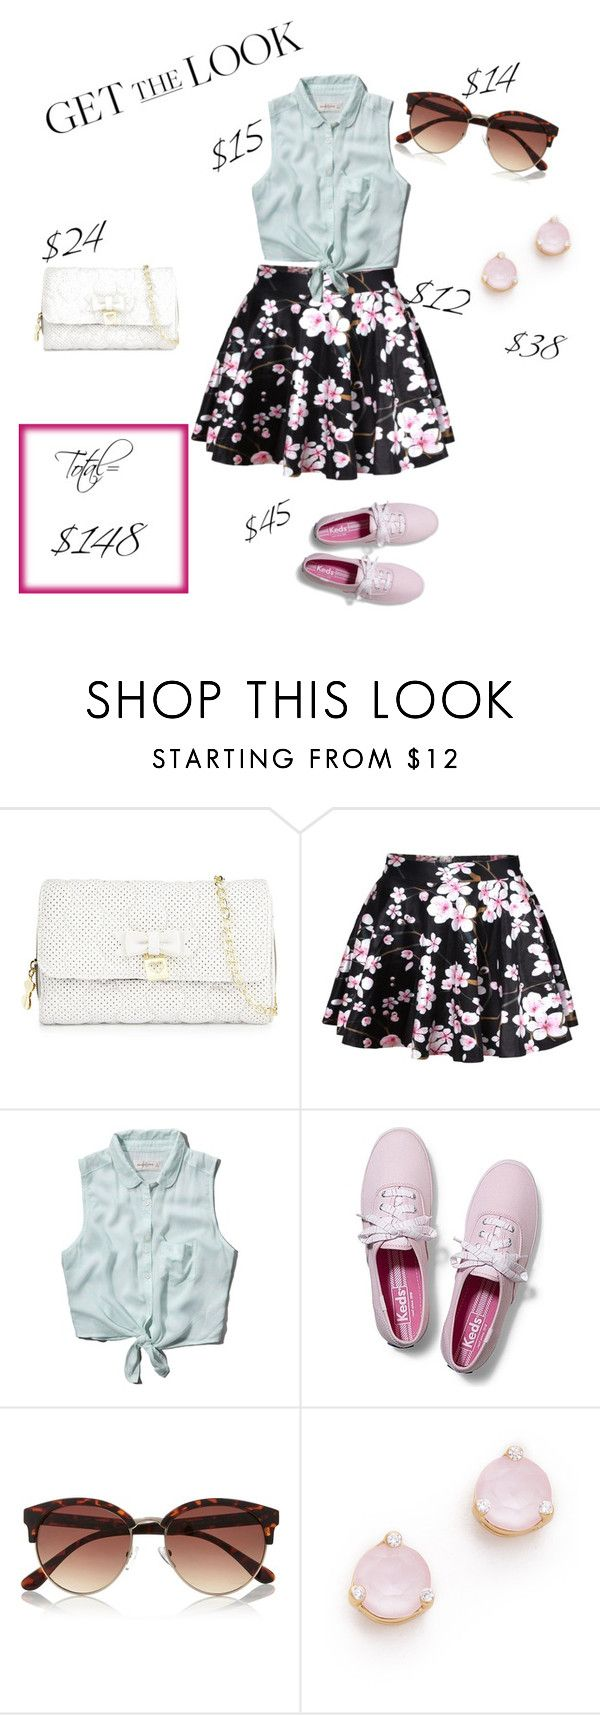 """""""Spring Weekend"""" by jollyme ❤ liked on Polyvore featuring Betsey Johnson, Abercrombie & Fitch, Keds, River Island, Kate Spade and GetTheLook"""